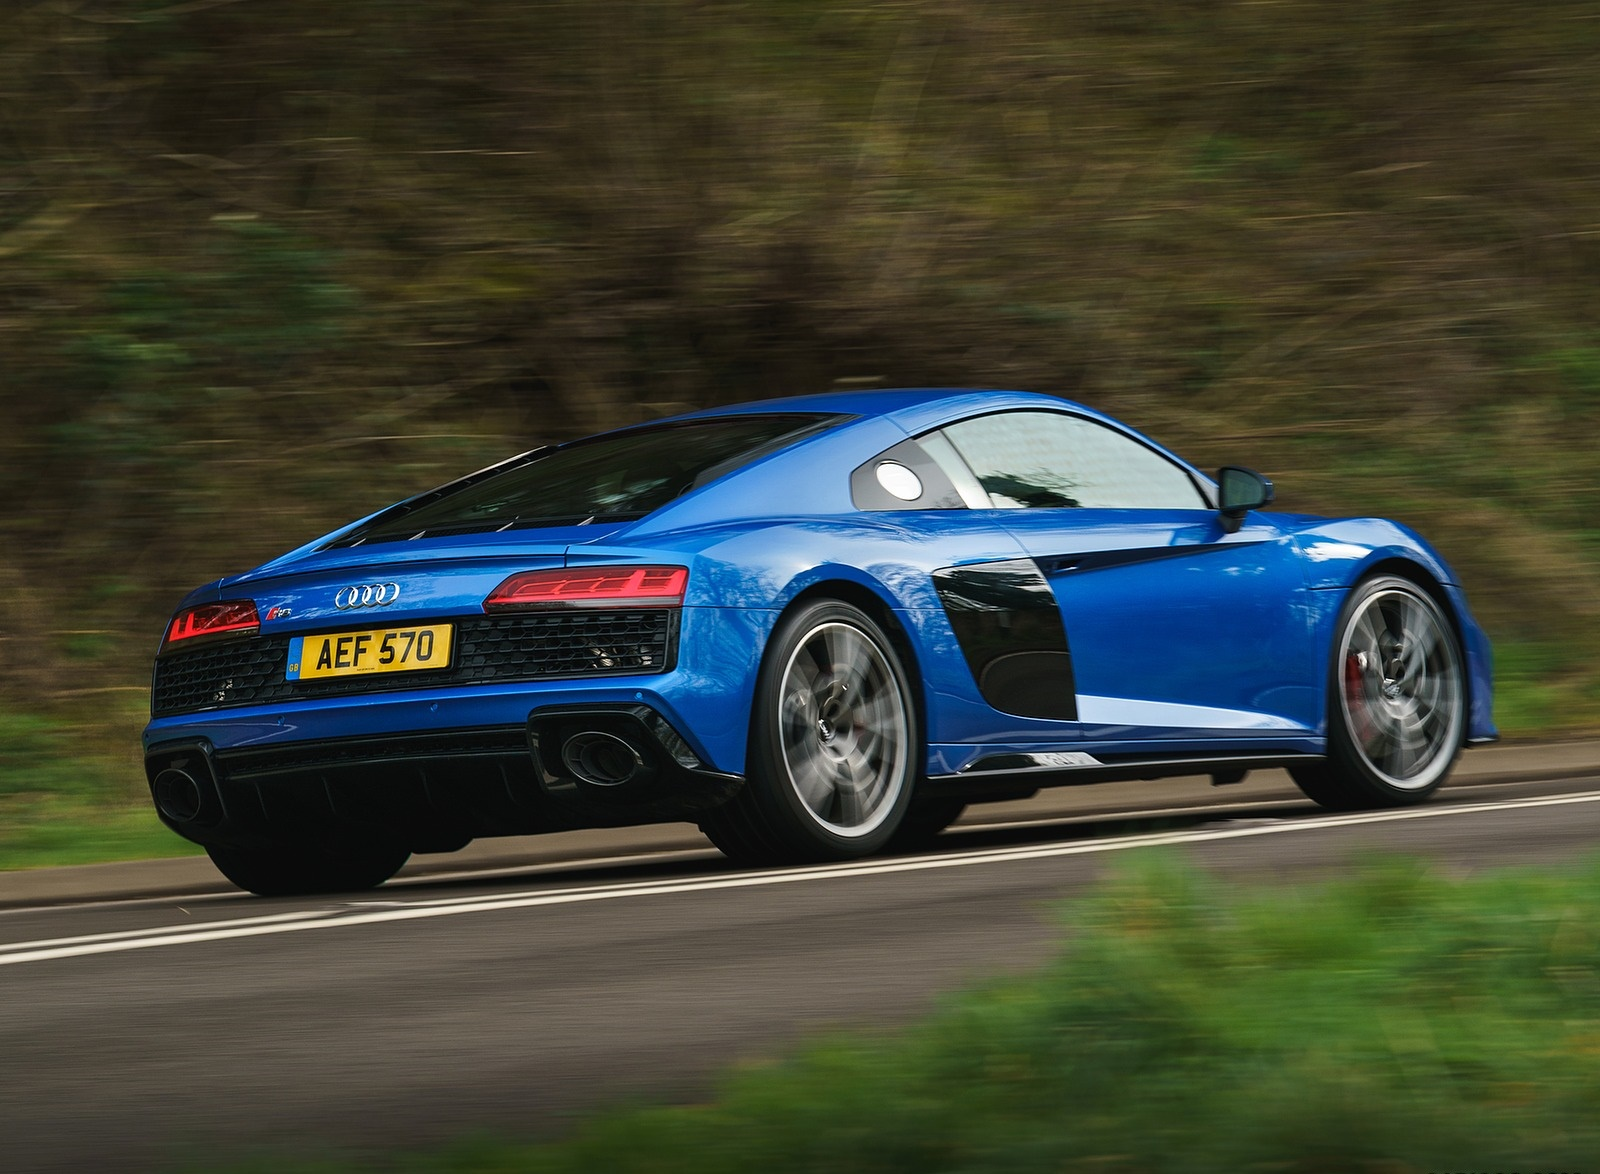 2019 Audi R8 V10 Coupe quattro (UK-Spec) Rear Three-Quarter Wallpaper (6)